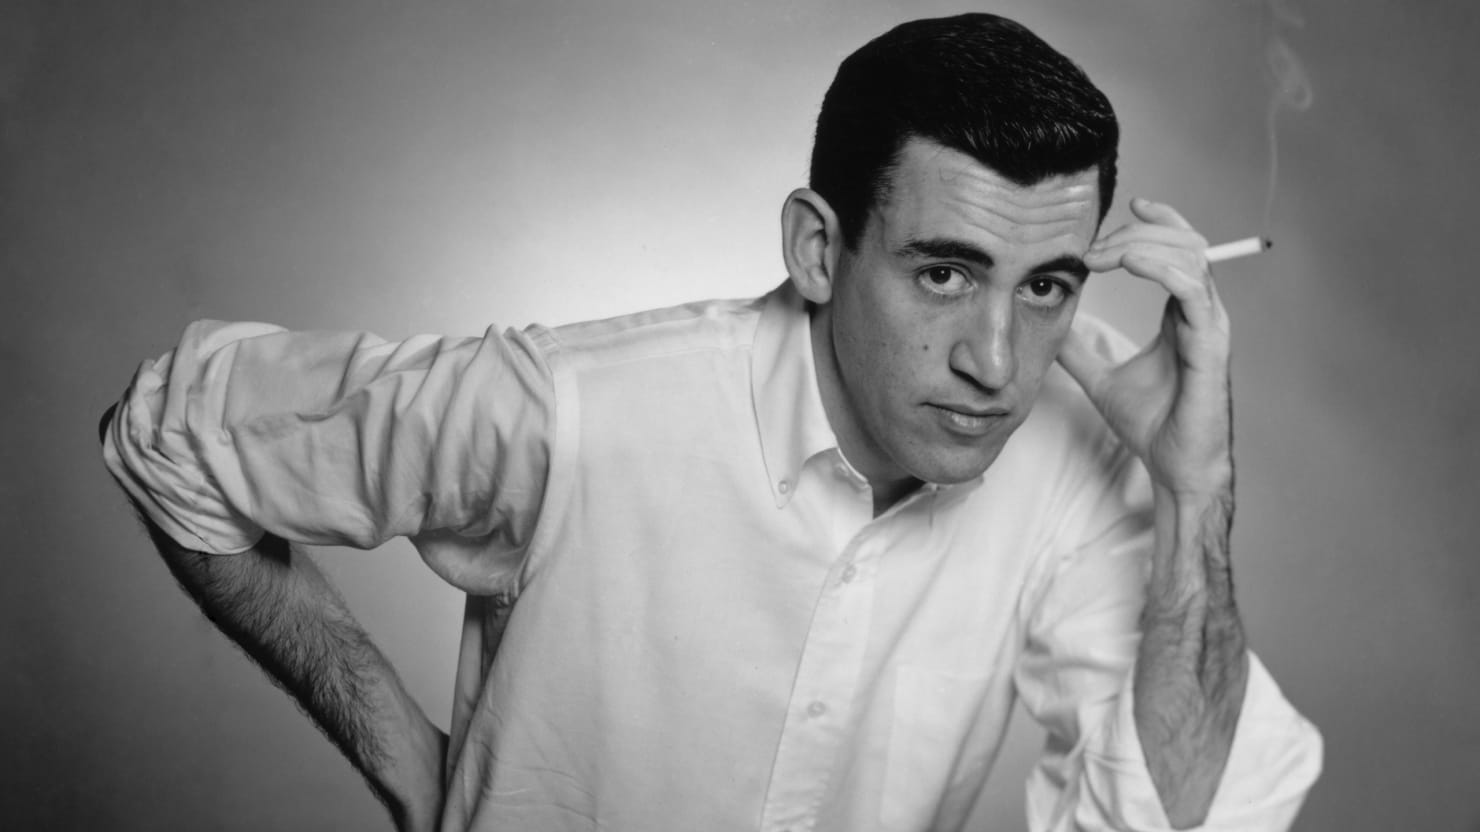 Jerome D. Salinger. Quelle: https://img.thedailybeast.com/image/upload/c_crop,d_placeholder_euli9k,h_1439,w_2560,x_0,y_0/dpr_2.0/c_limit,w_740/fl_lossy,q_auto/v1492718071/articles/2013/09/02/15-revelations-from-new-j-d-salinger-biography/130901-salinger-tease_iqjaxj